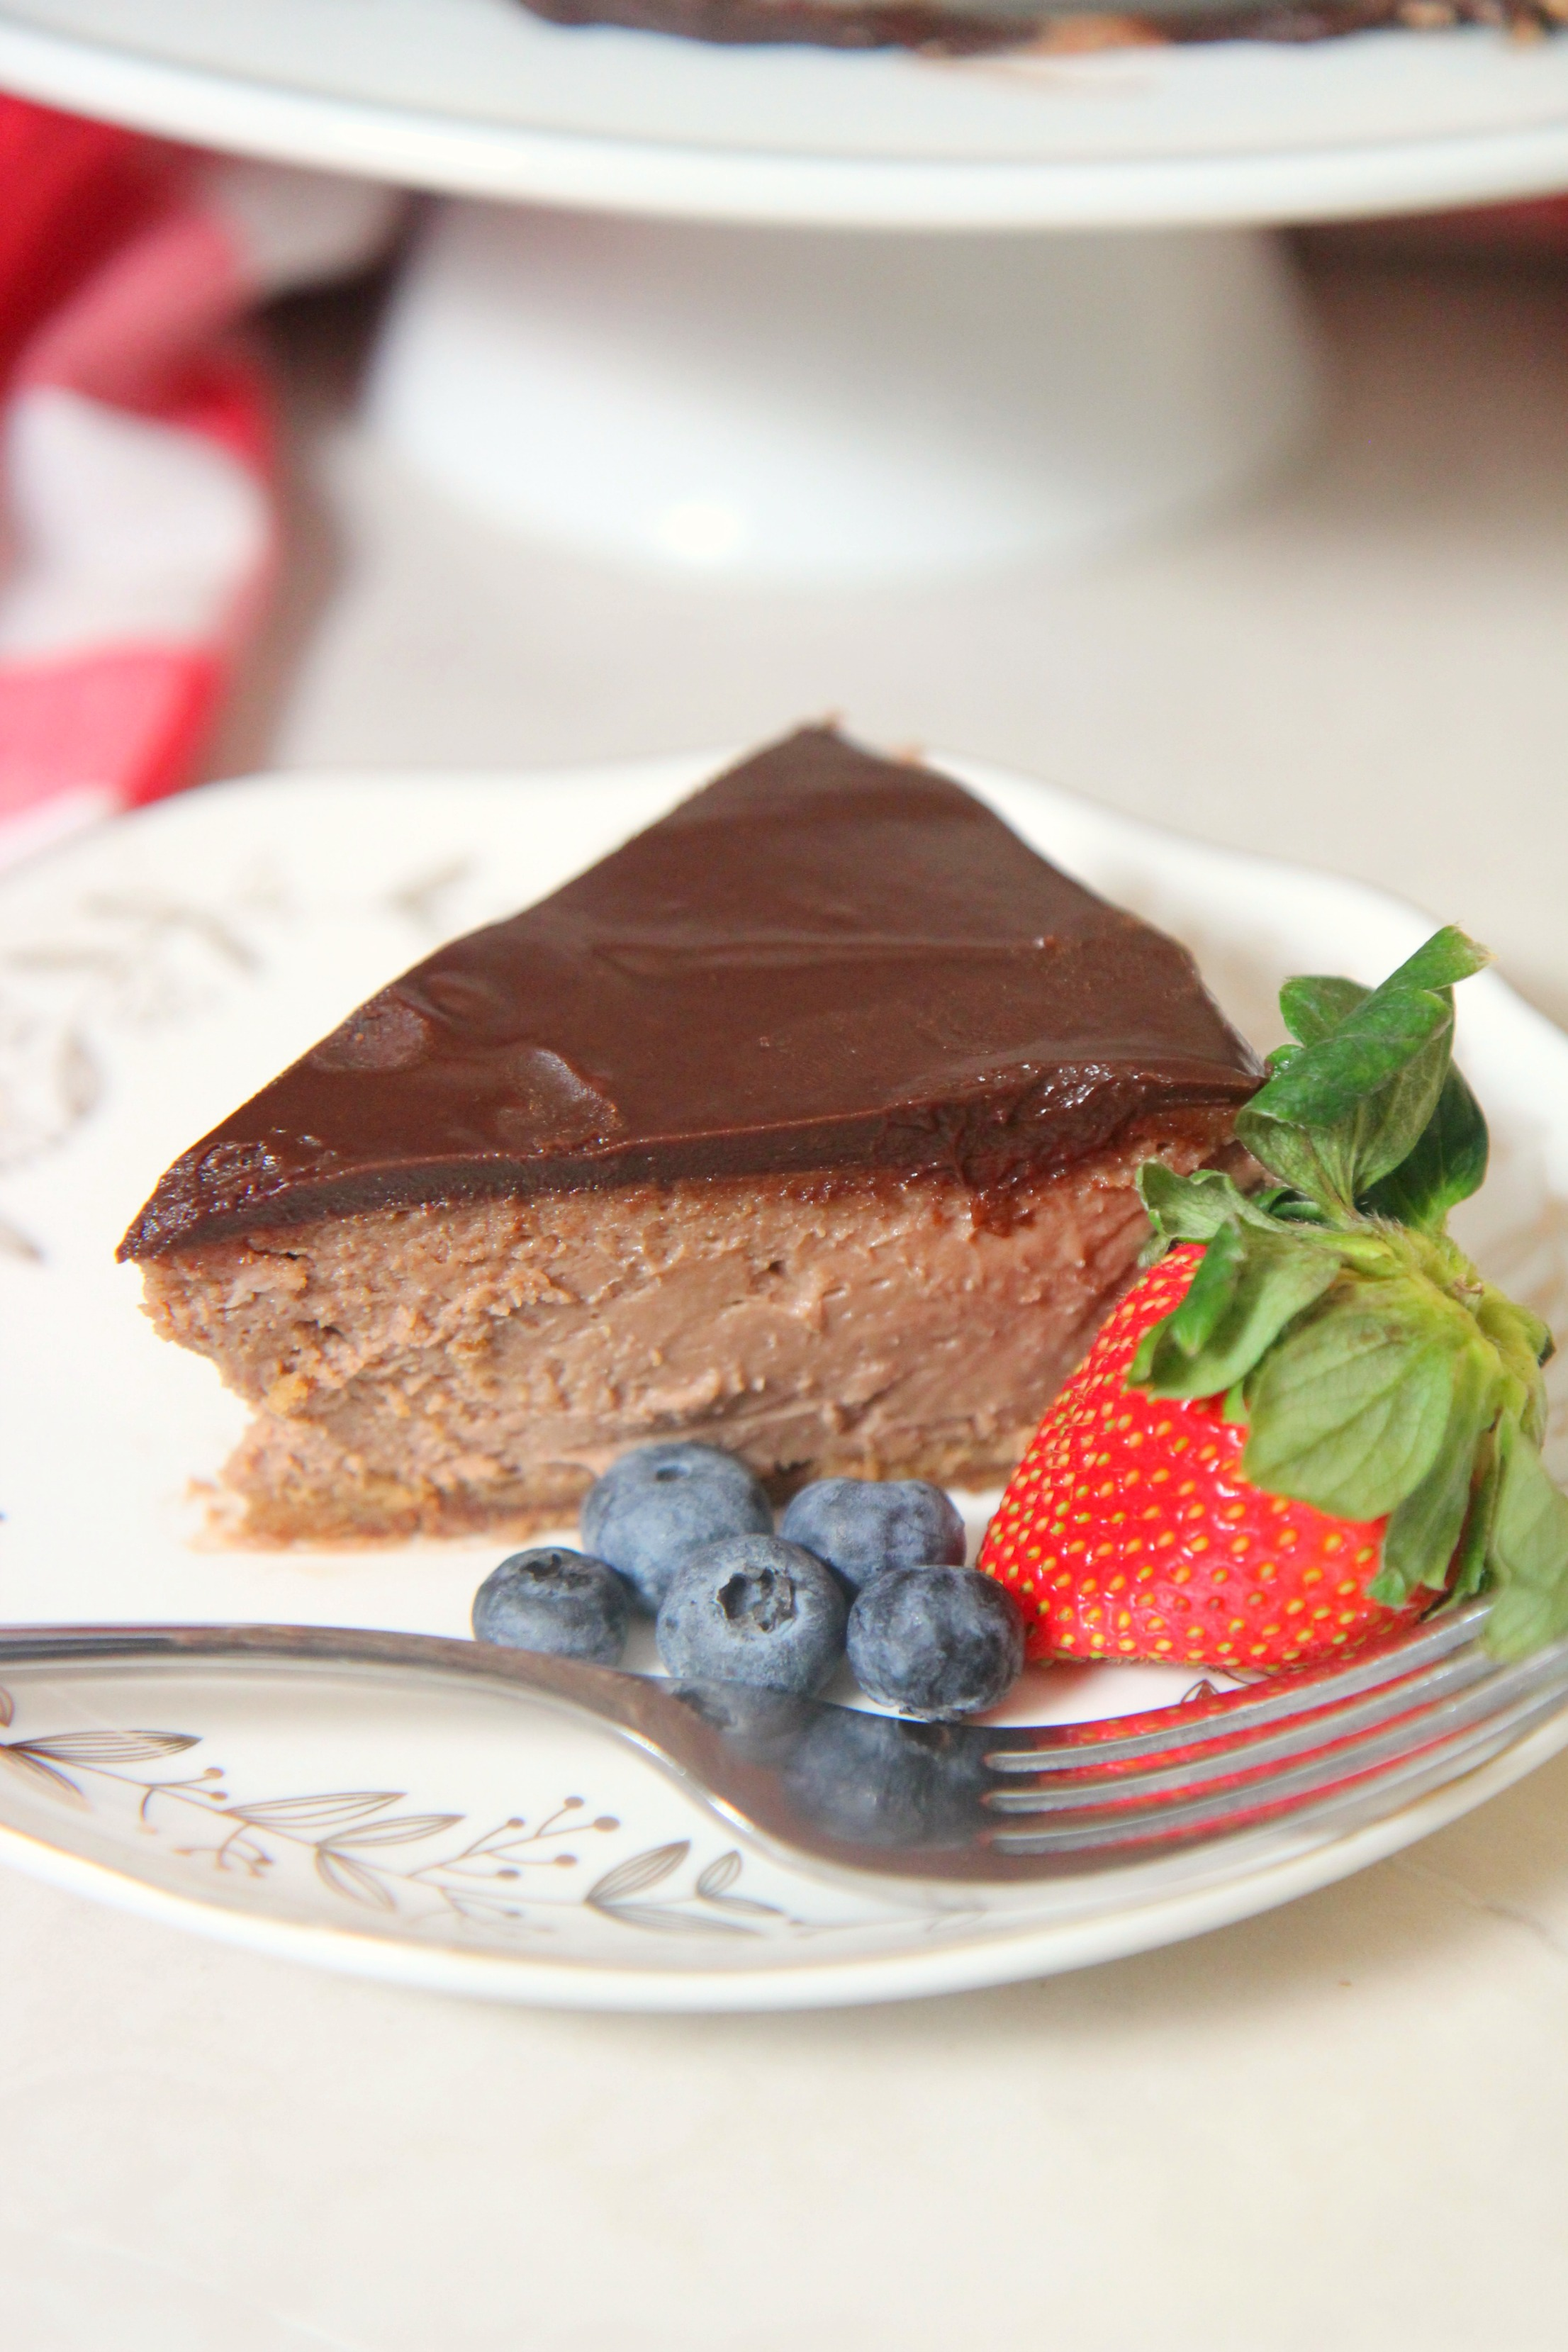 This decadent and delicious nutella cheesecake is totally worth the extra effort it takes to make from scratch.